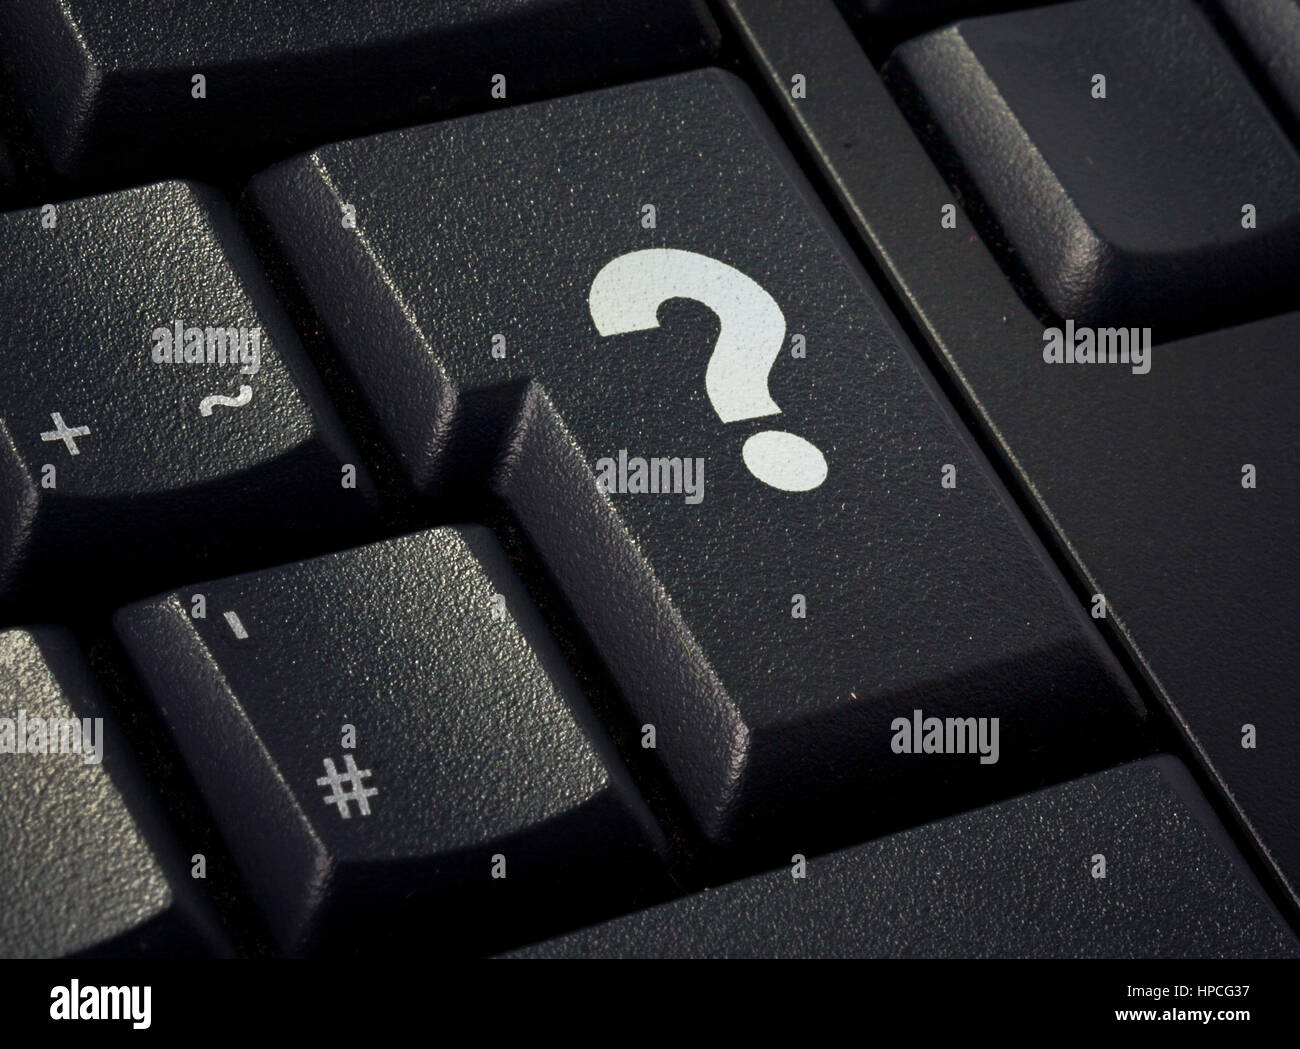 Return key of a black keyboard with the shape of a question mark imprinted .(series) - Stock Image